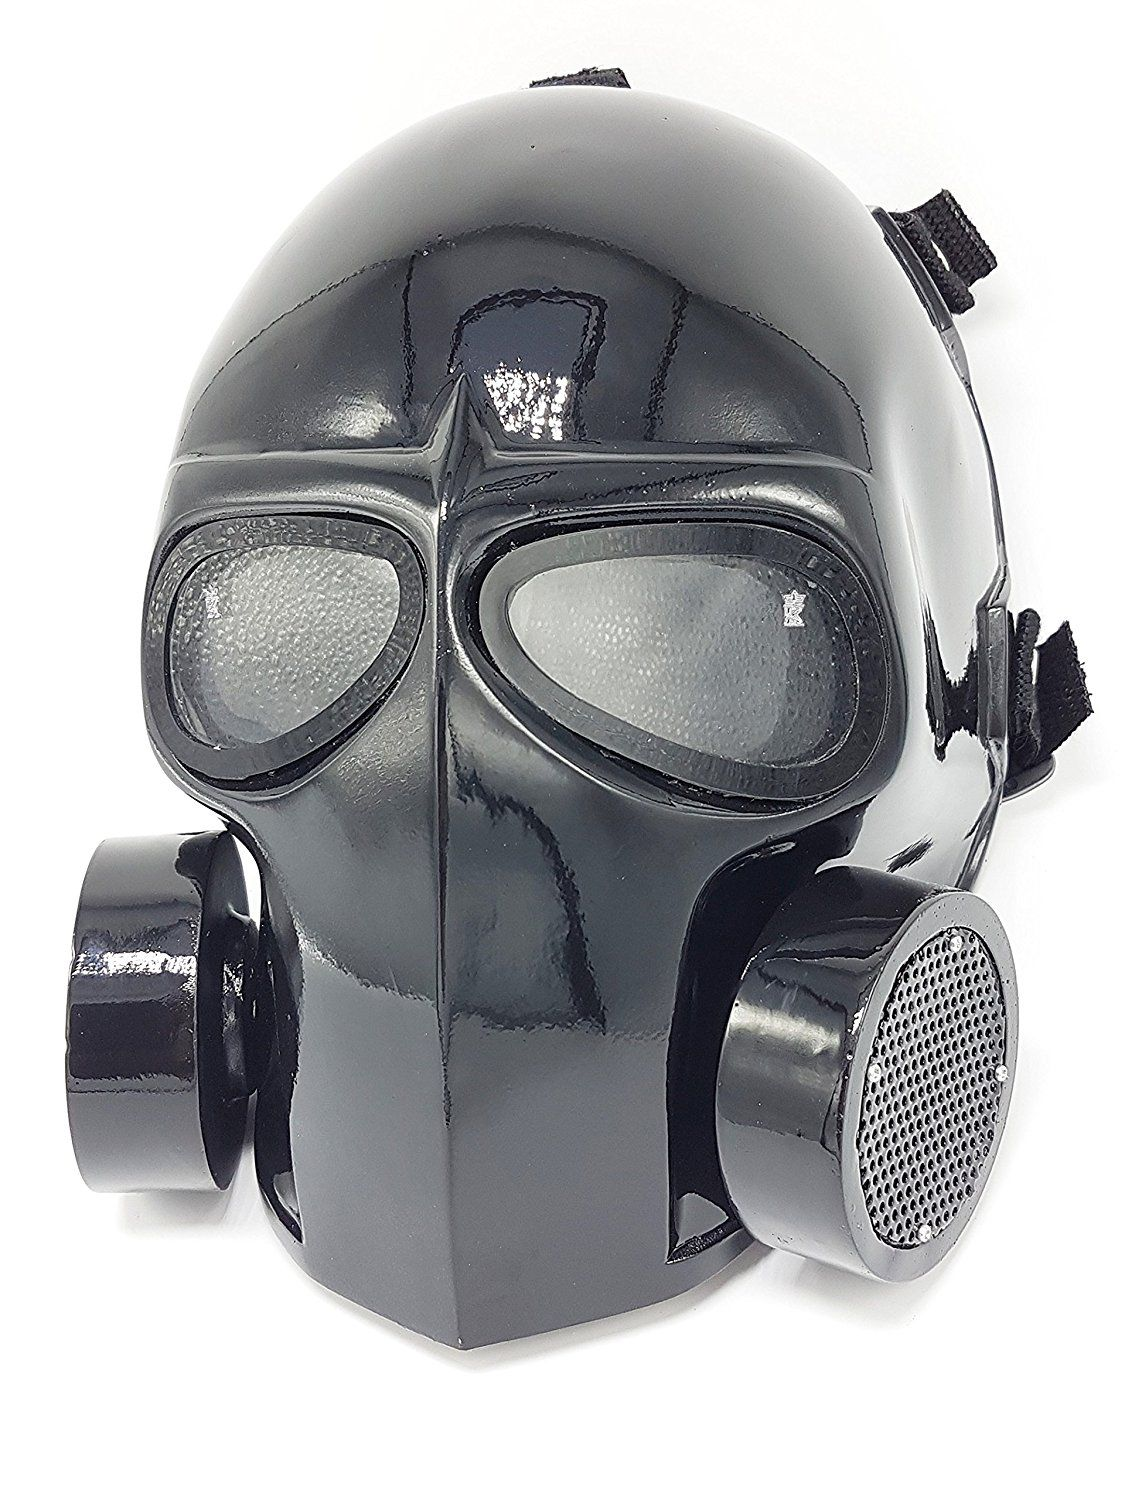 Amazon.com : Invader King Flat White Airsoft Mask Army of Two ...